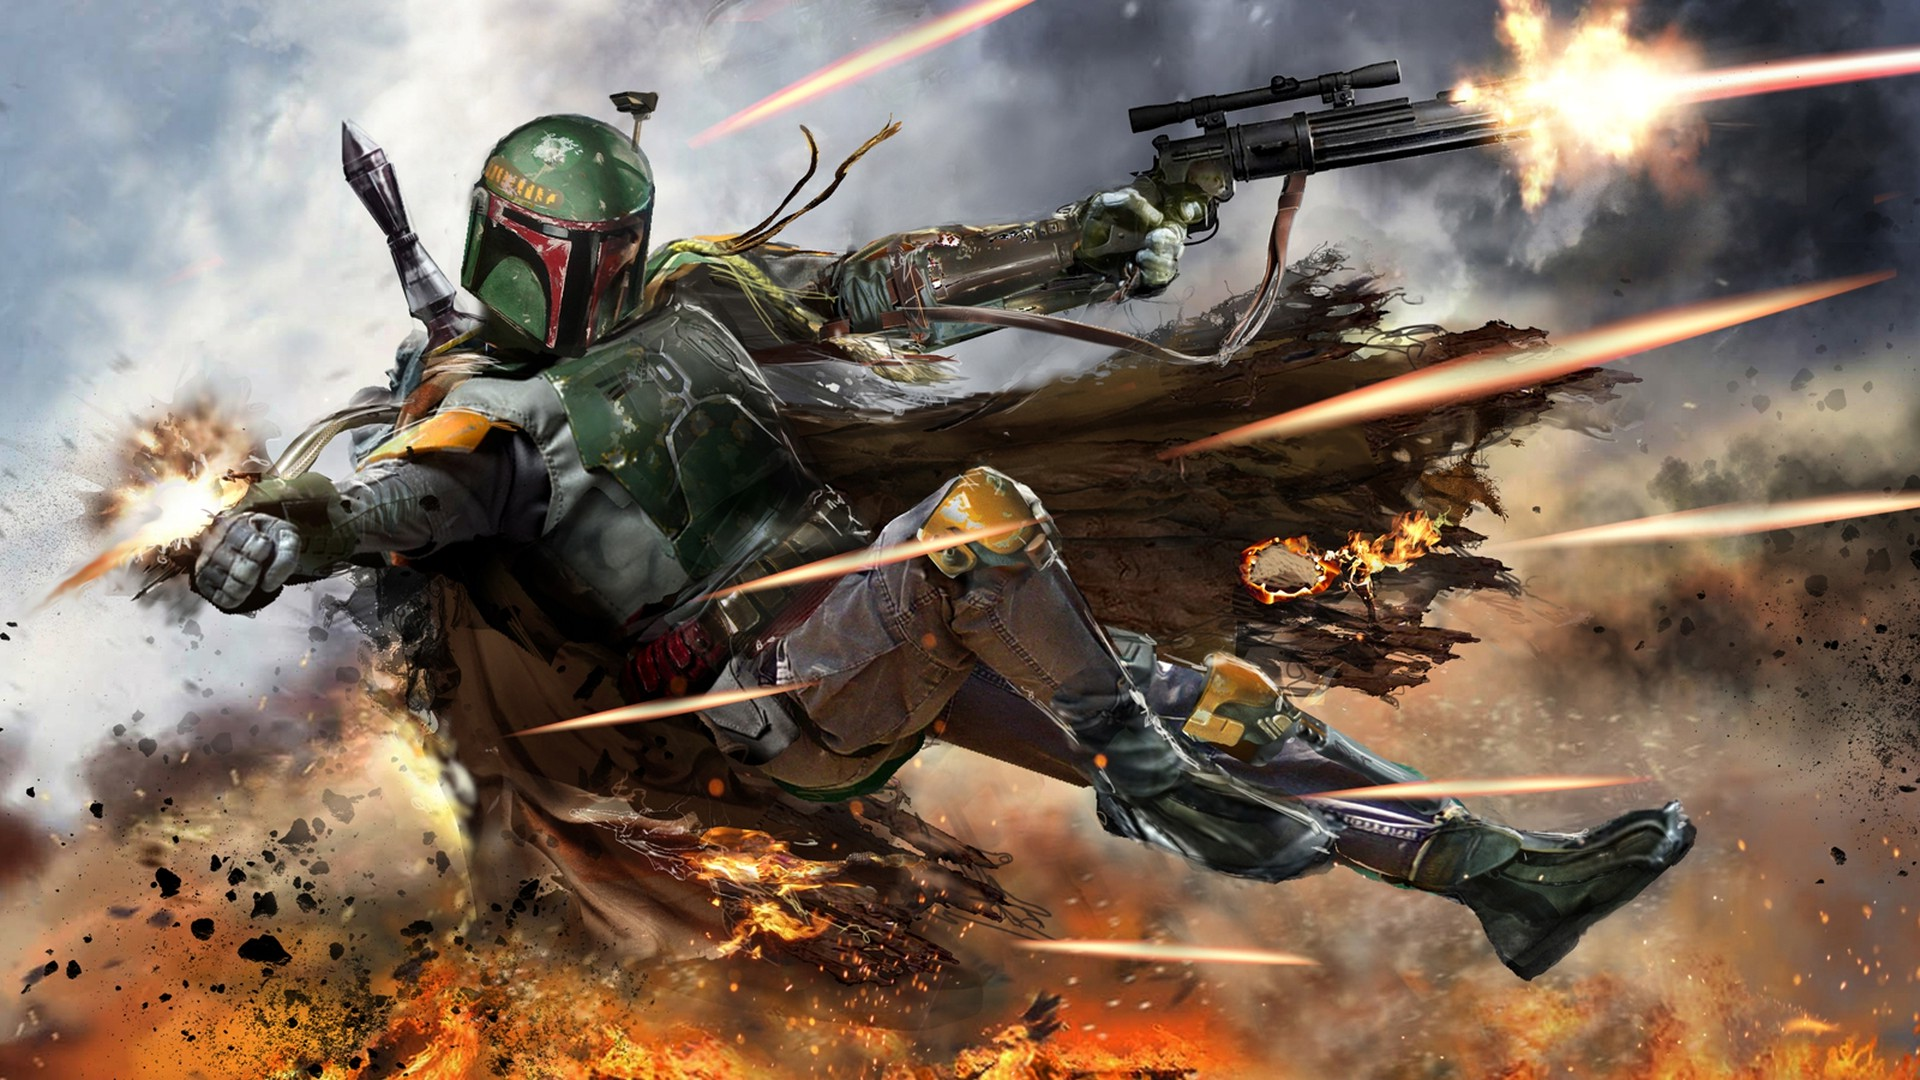 38 Star Wars Boba Fett Background On Wallpapersafari